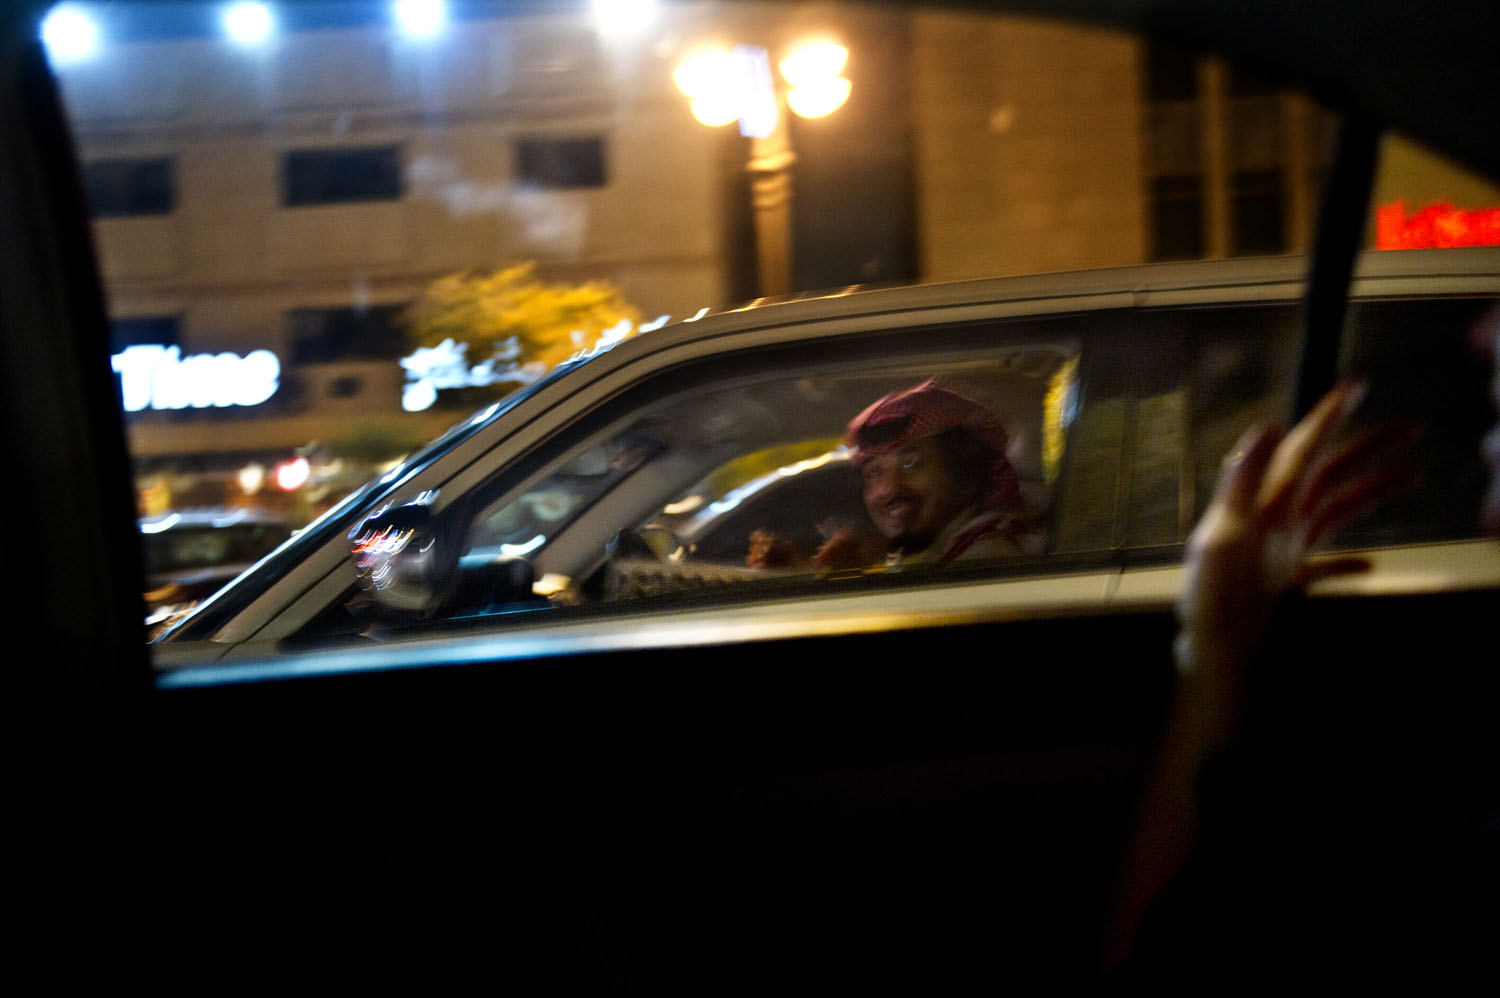 Young Saudi men hold up their phone numbers on a Thursday night in traffic as they try to pick up women in Riyadh, Saudi Arabia, June 9, 2011.  Because of social and societal restrictions, young men and women cannot flirt and socialize openly, so young people are constantly devising ways to interact with women. Reciting their phone numbers aloud, holding them up in public, and etching blackberry pin numbers onto cars are just a few ways young men try to get women to call them.